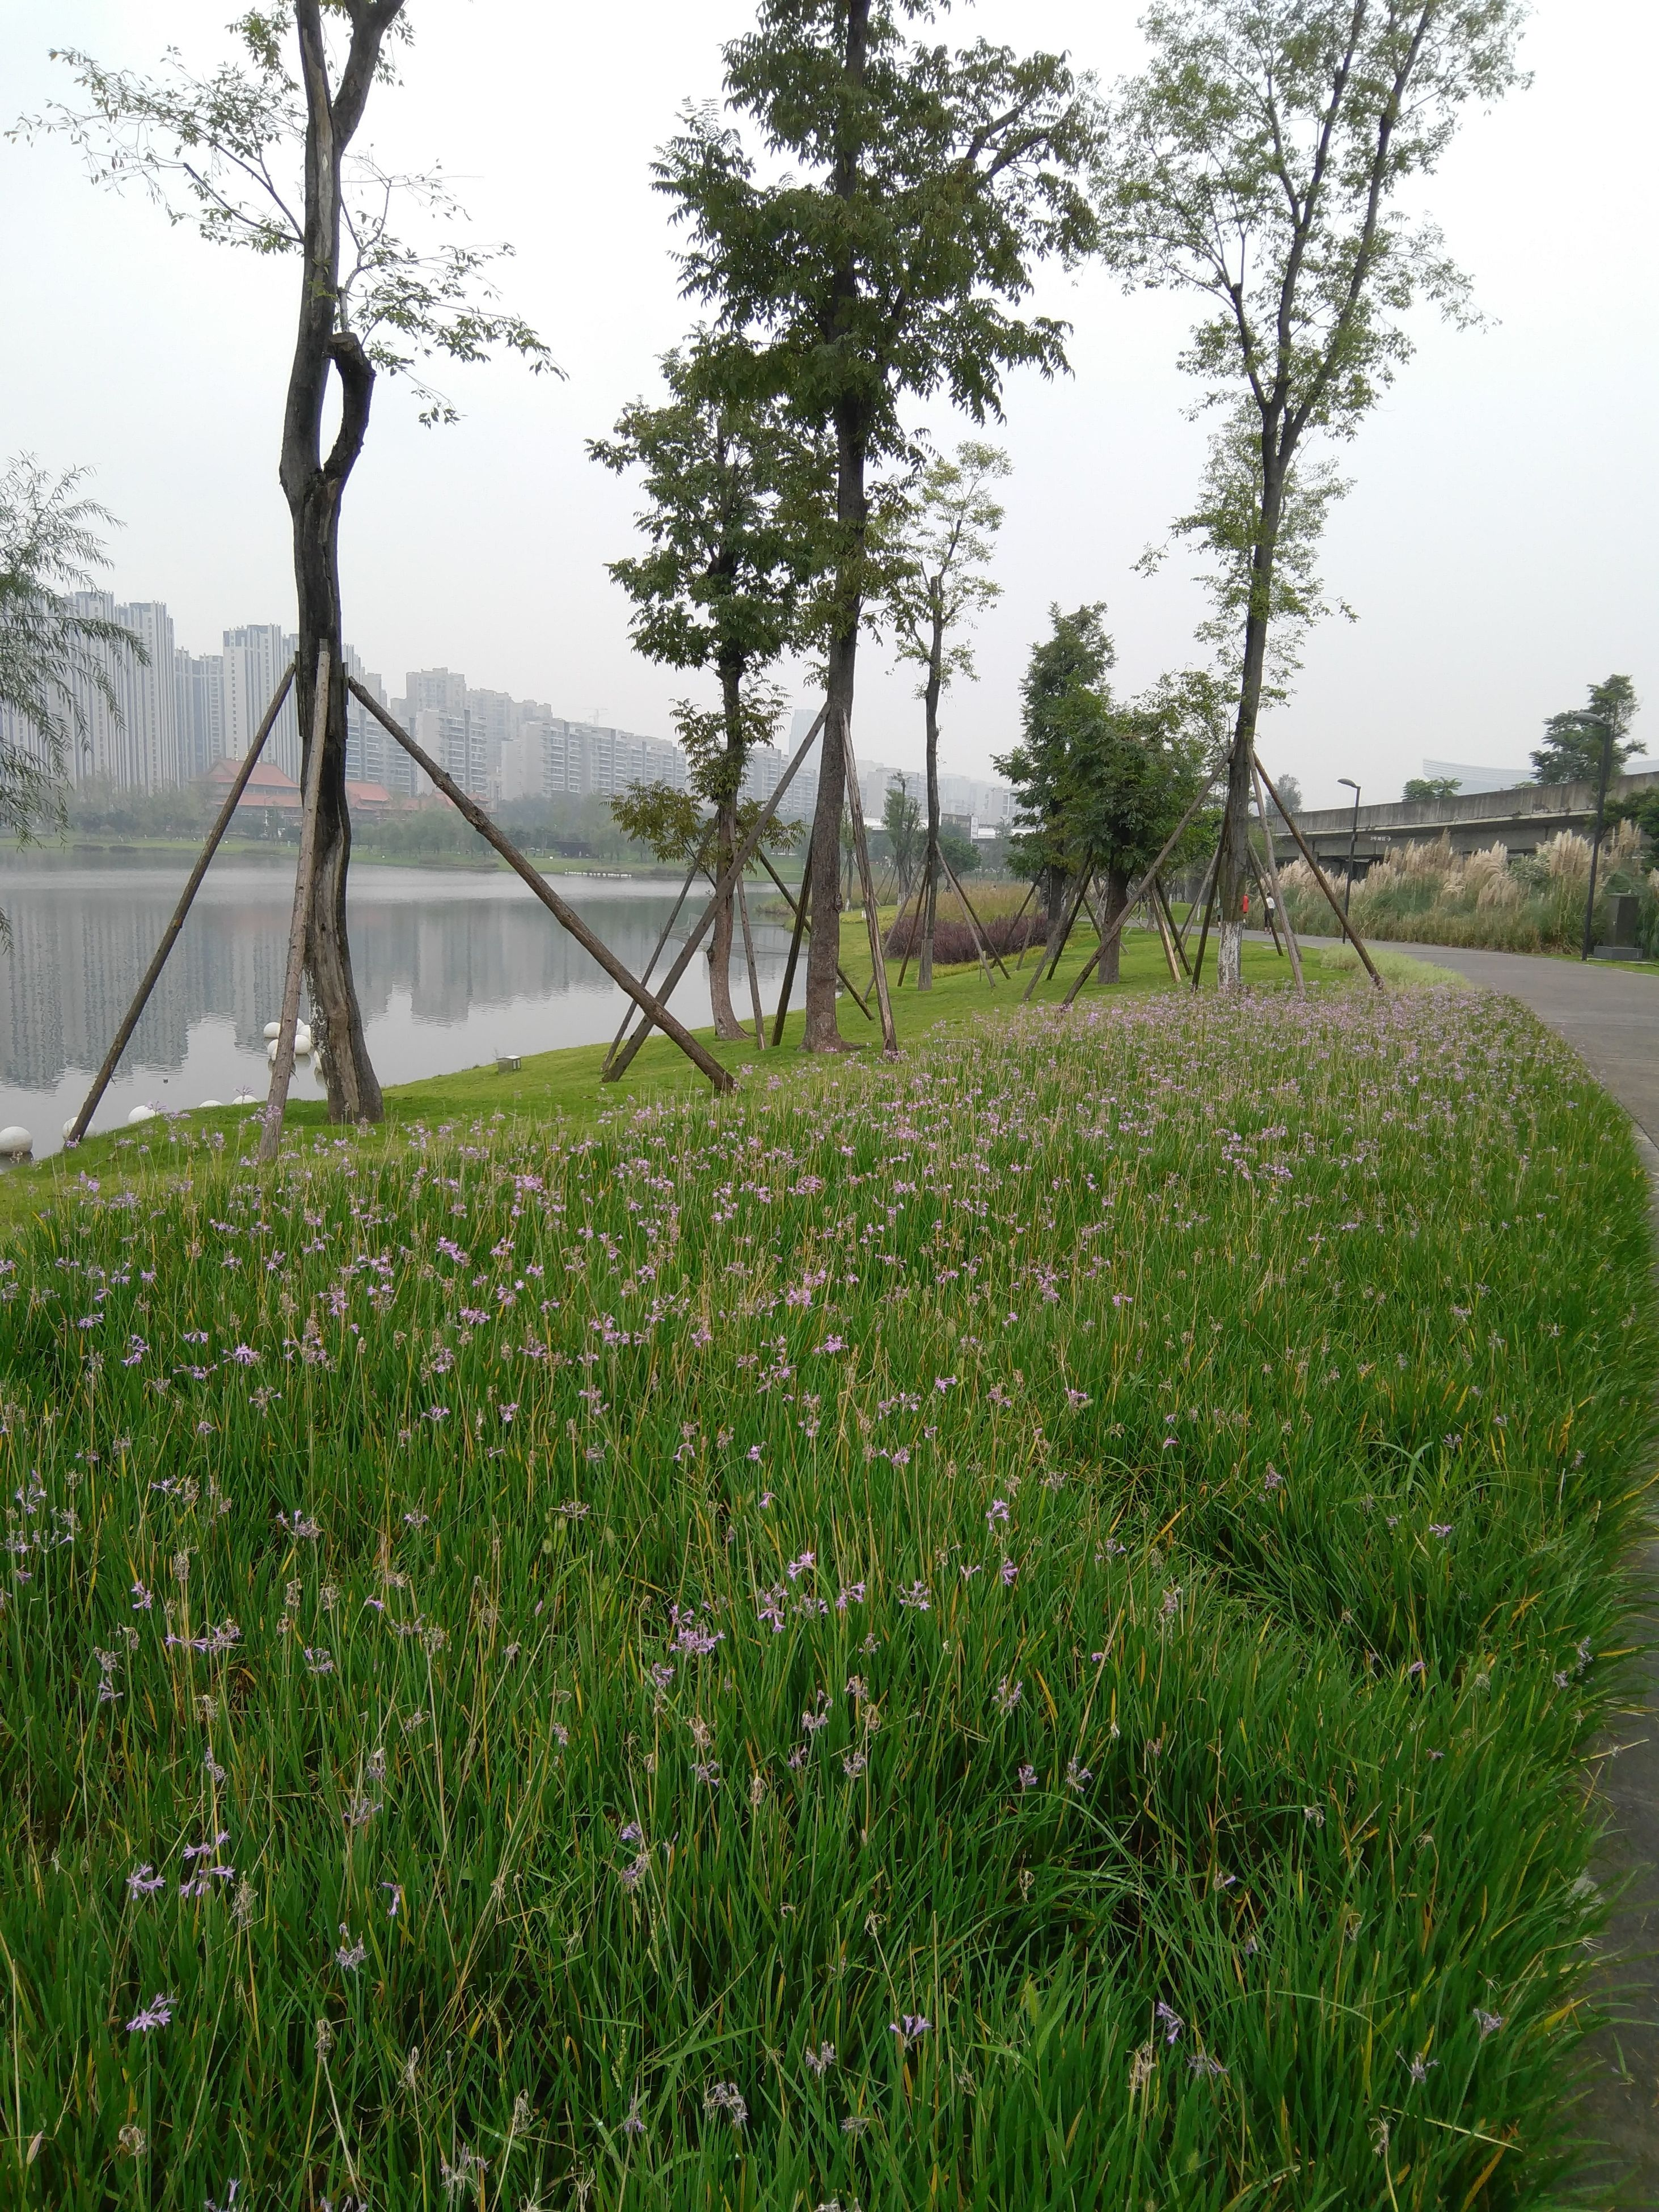 grass, growth, tree, green color, field, tree trunk, water, tranquility, grassy, tranquil scene, bridge - man made structure, nature, plant, branch, beauty in nature, day, sky, scenics, suspension bridge, no people, grassland, growing